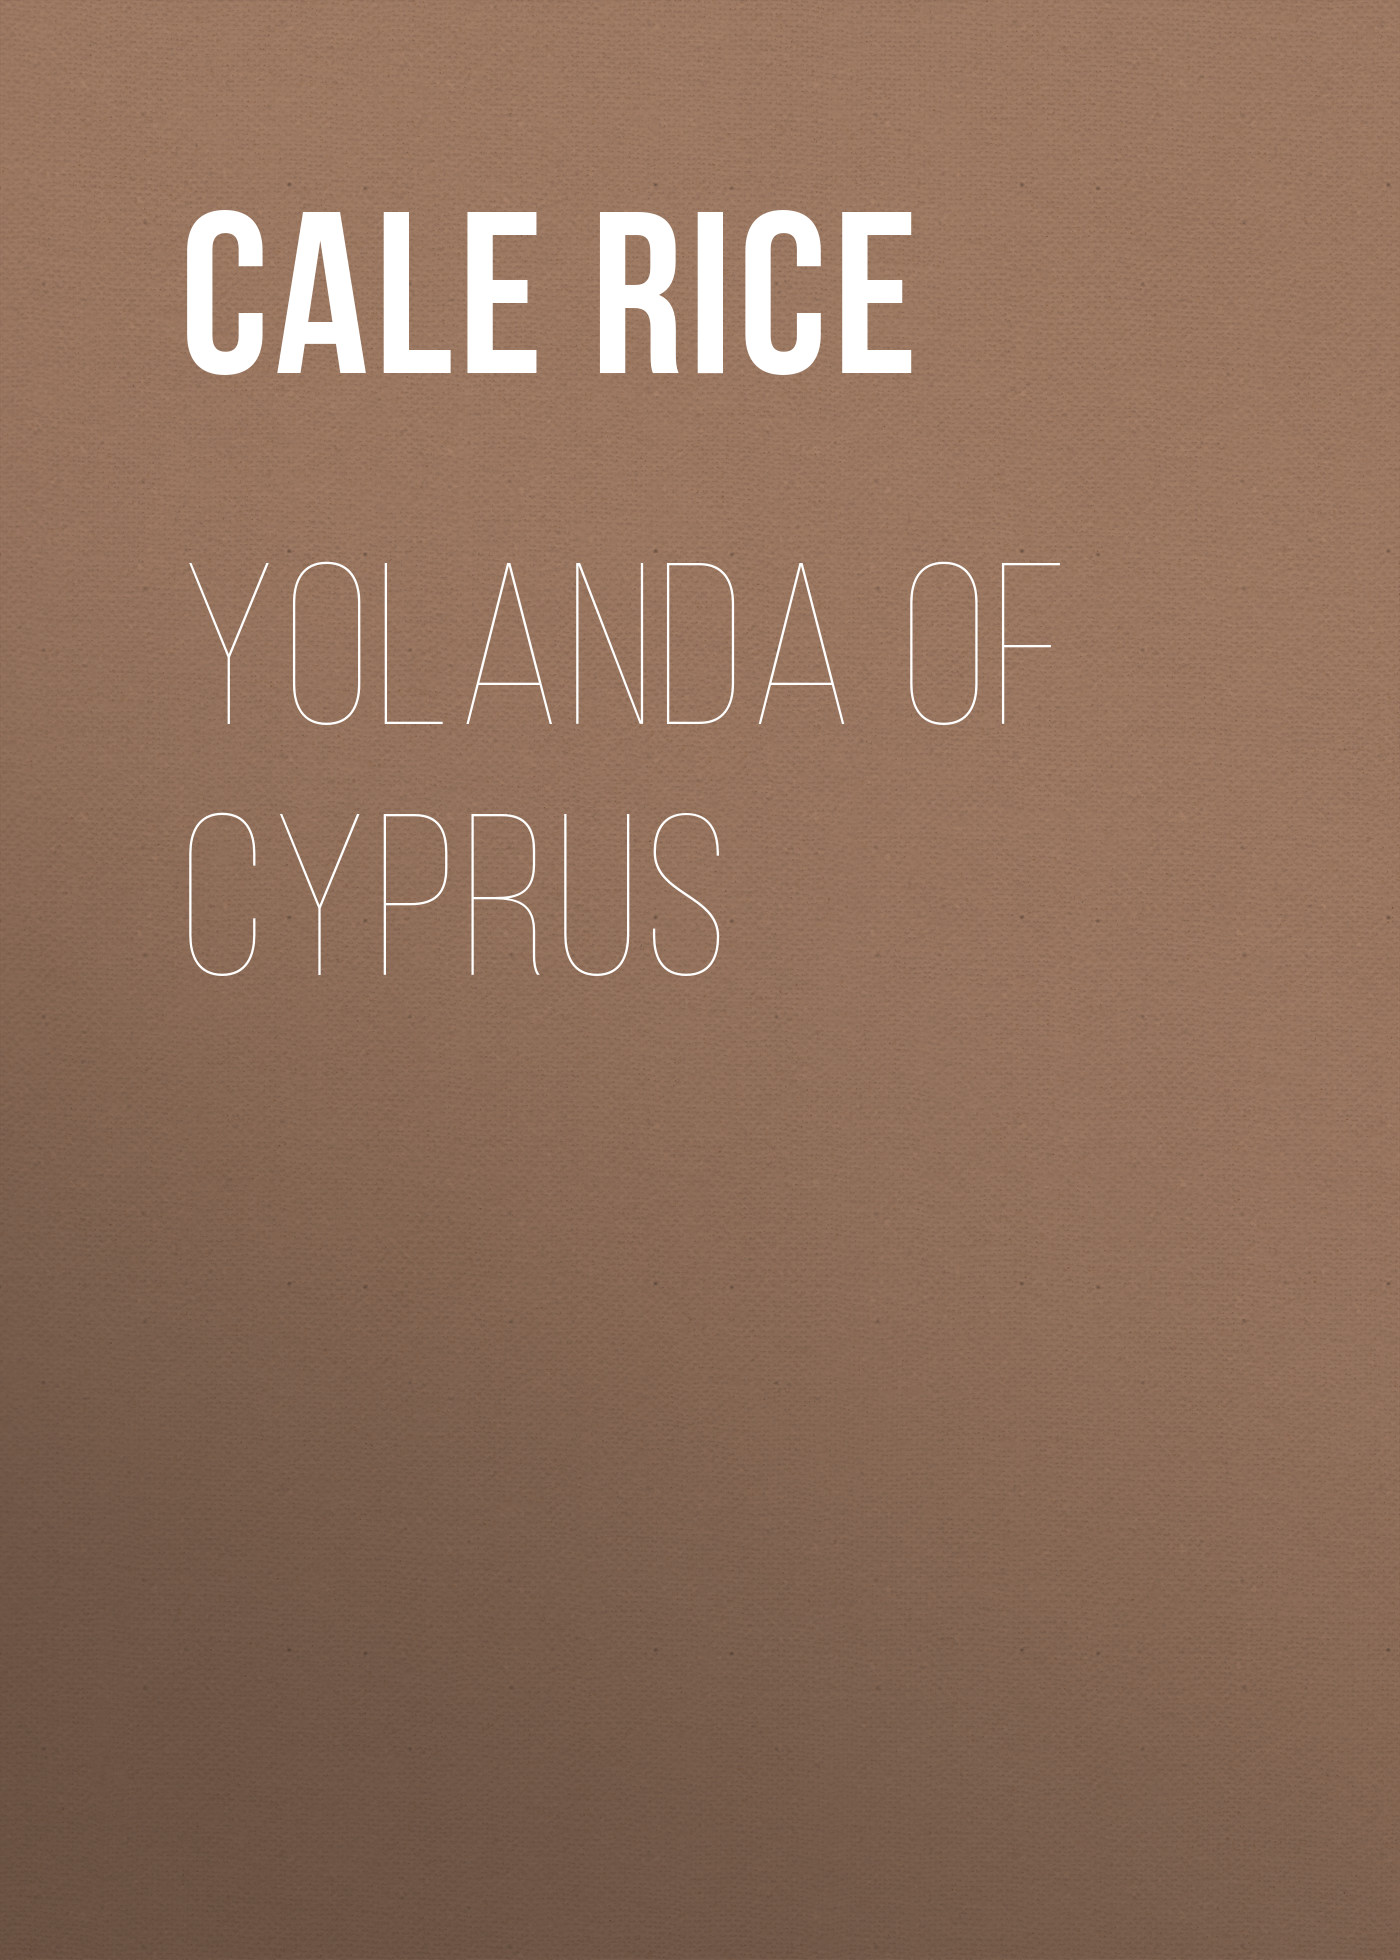 Rice Cale Young Yolanda of Cyprus